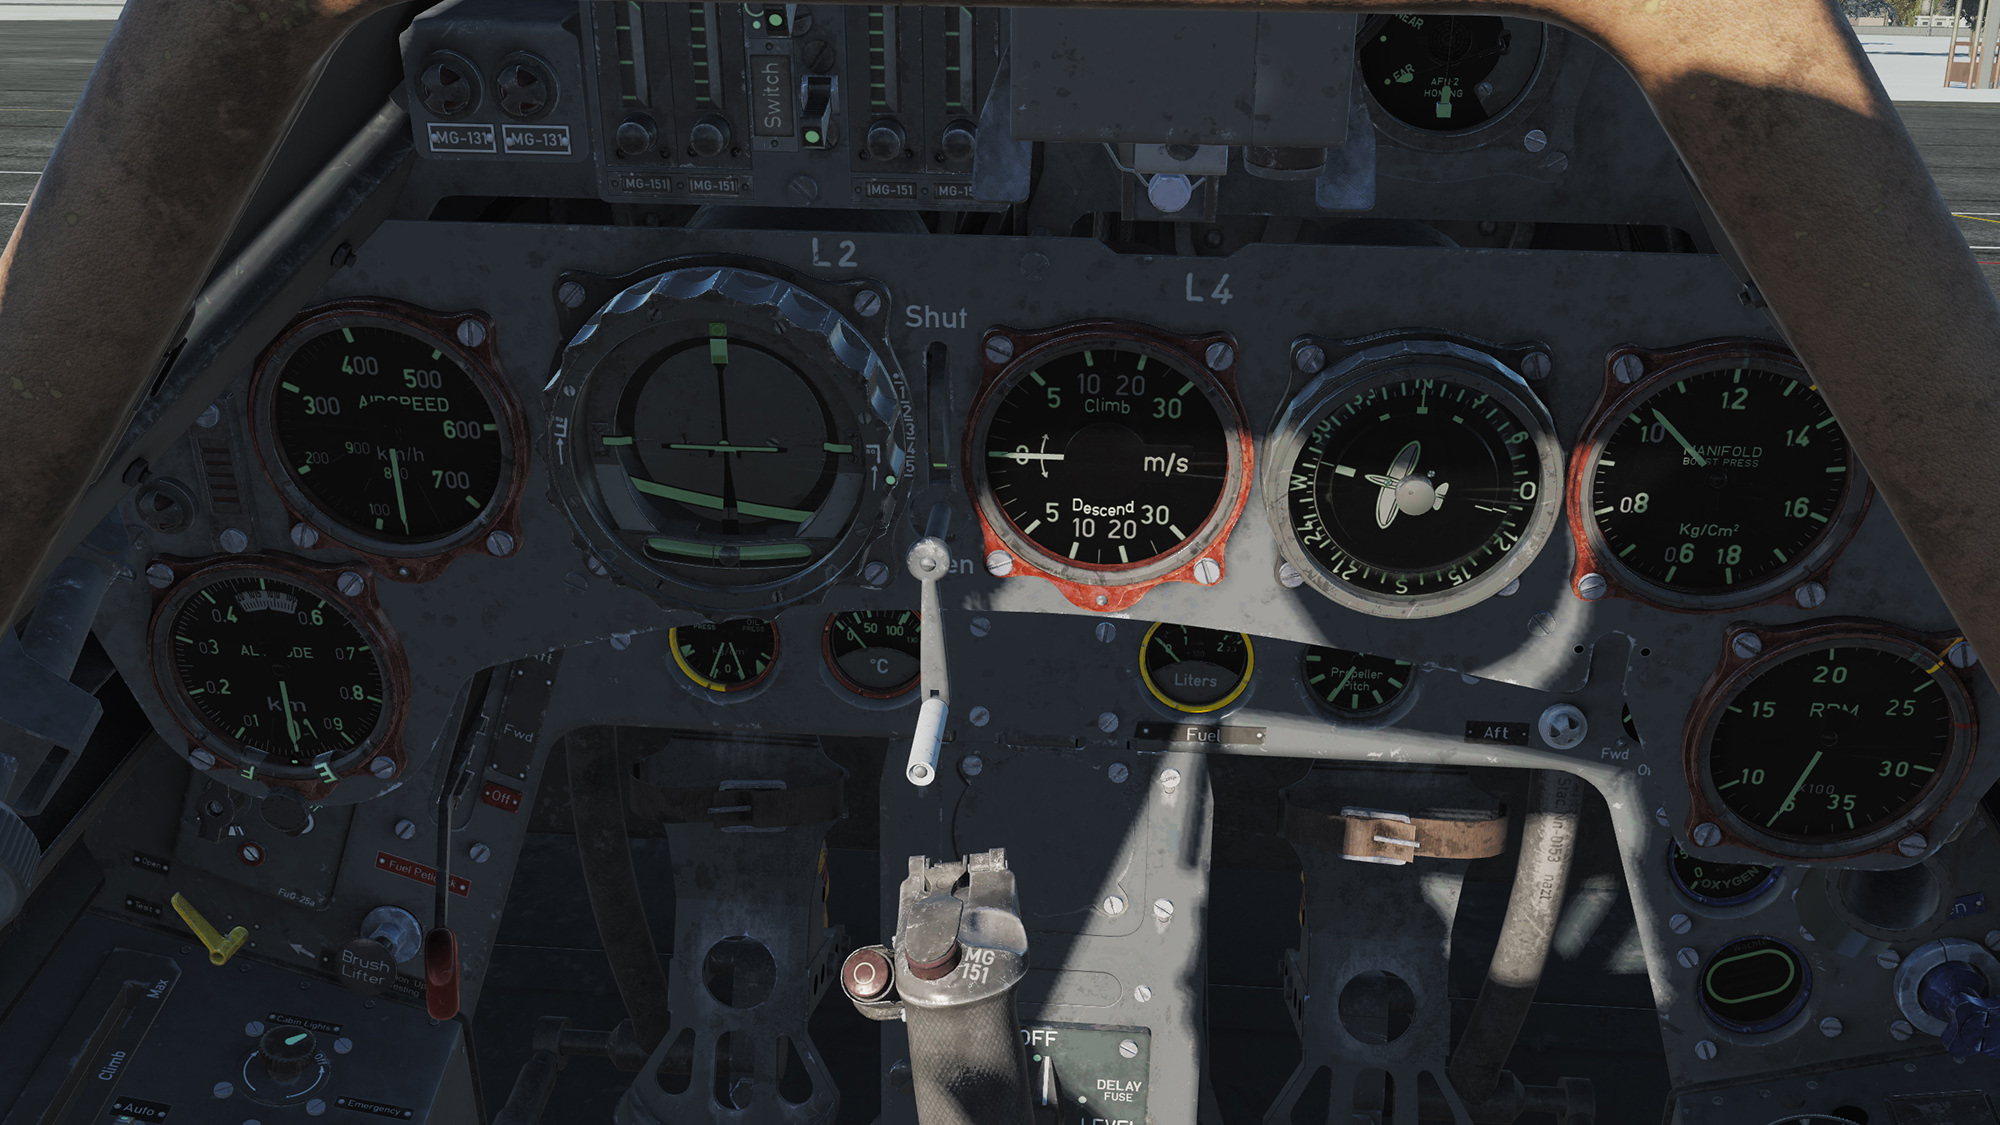 Focke-Wulf Fw 190 A-8 English Cockpit [METRIC]